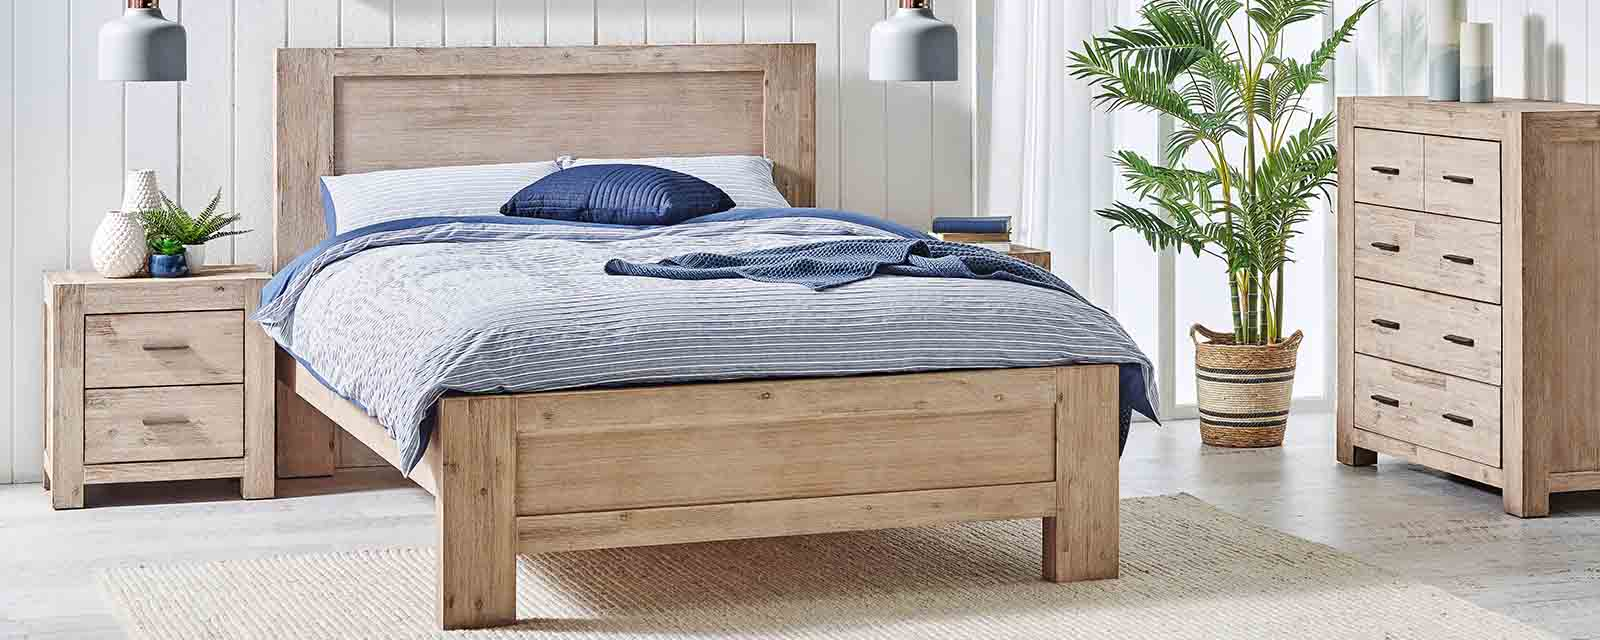 Complementary timber bed, tallboy and bedside table in a bedroom.